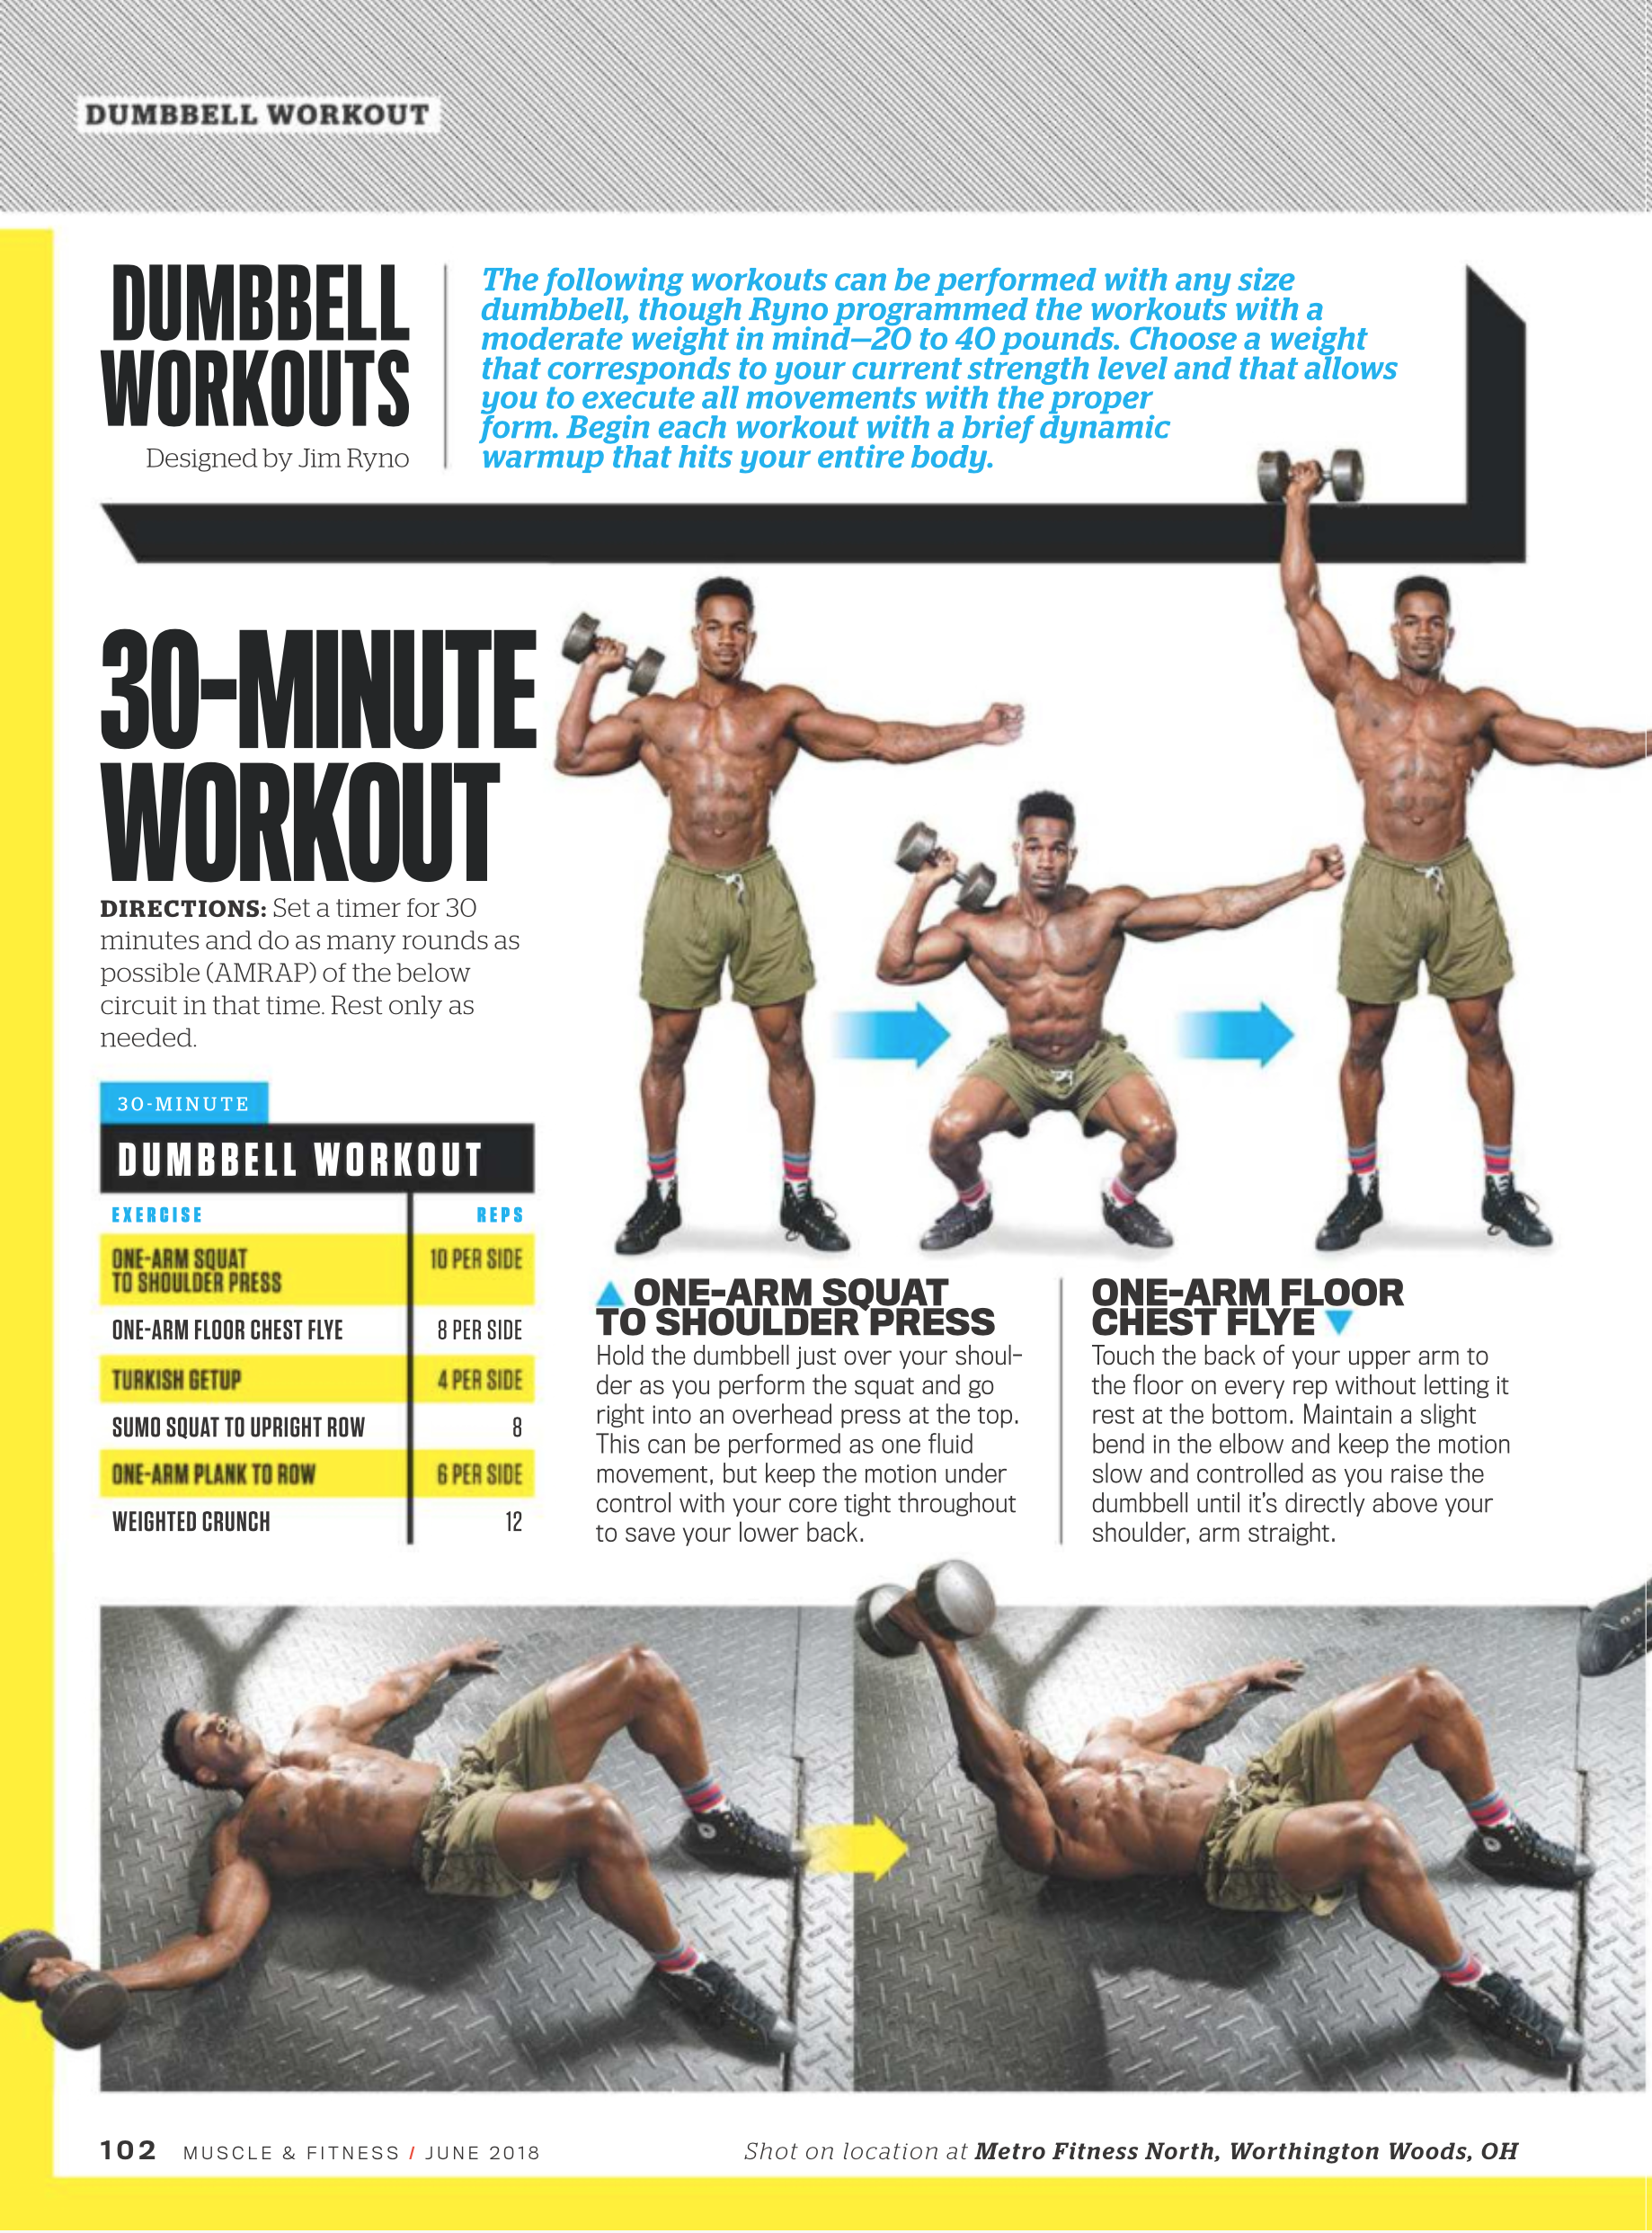 One-Tool Workout - Jim Ryno - Dumbbell - M&F - 3.png